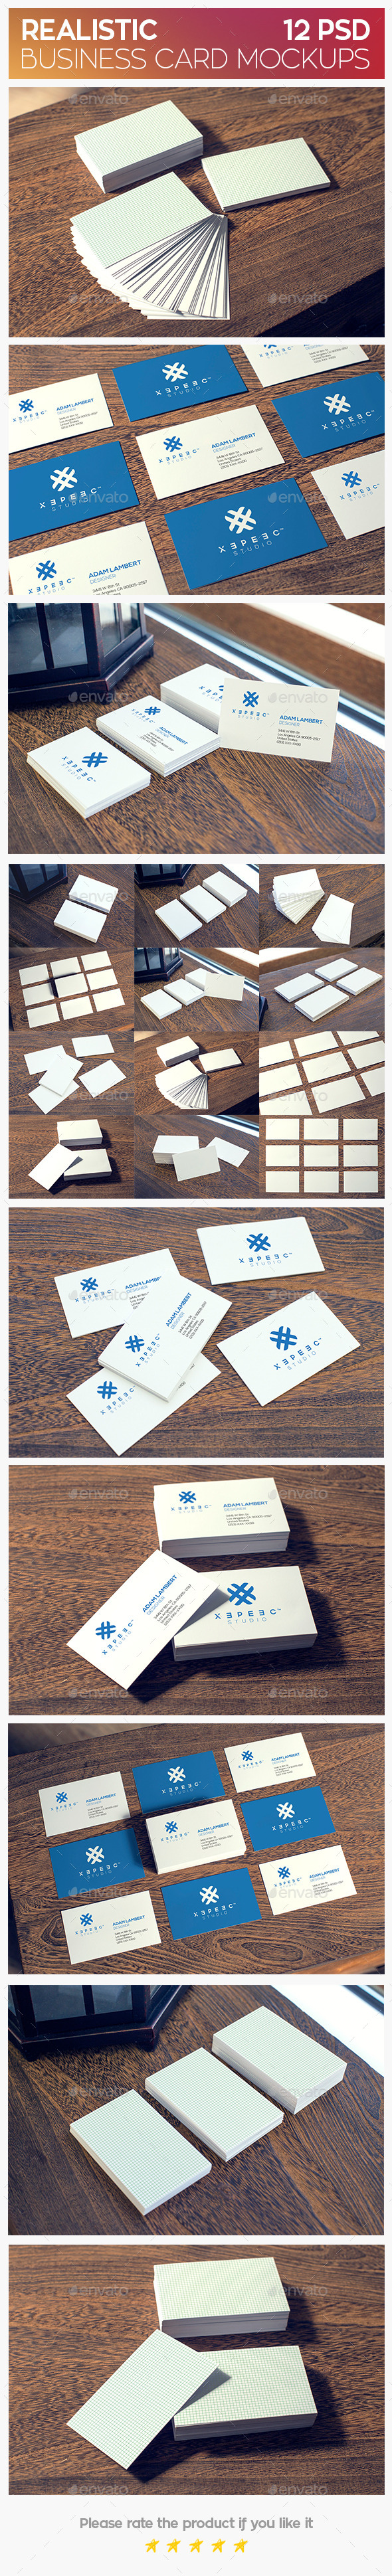 GraphicRiver Realistic Business Card Mockups 11375812